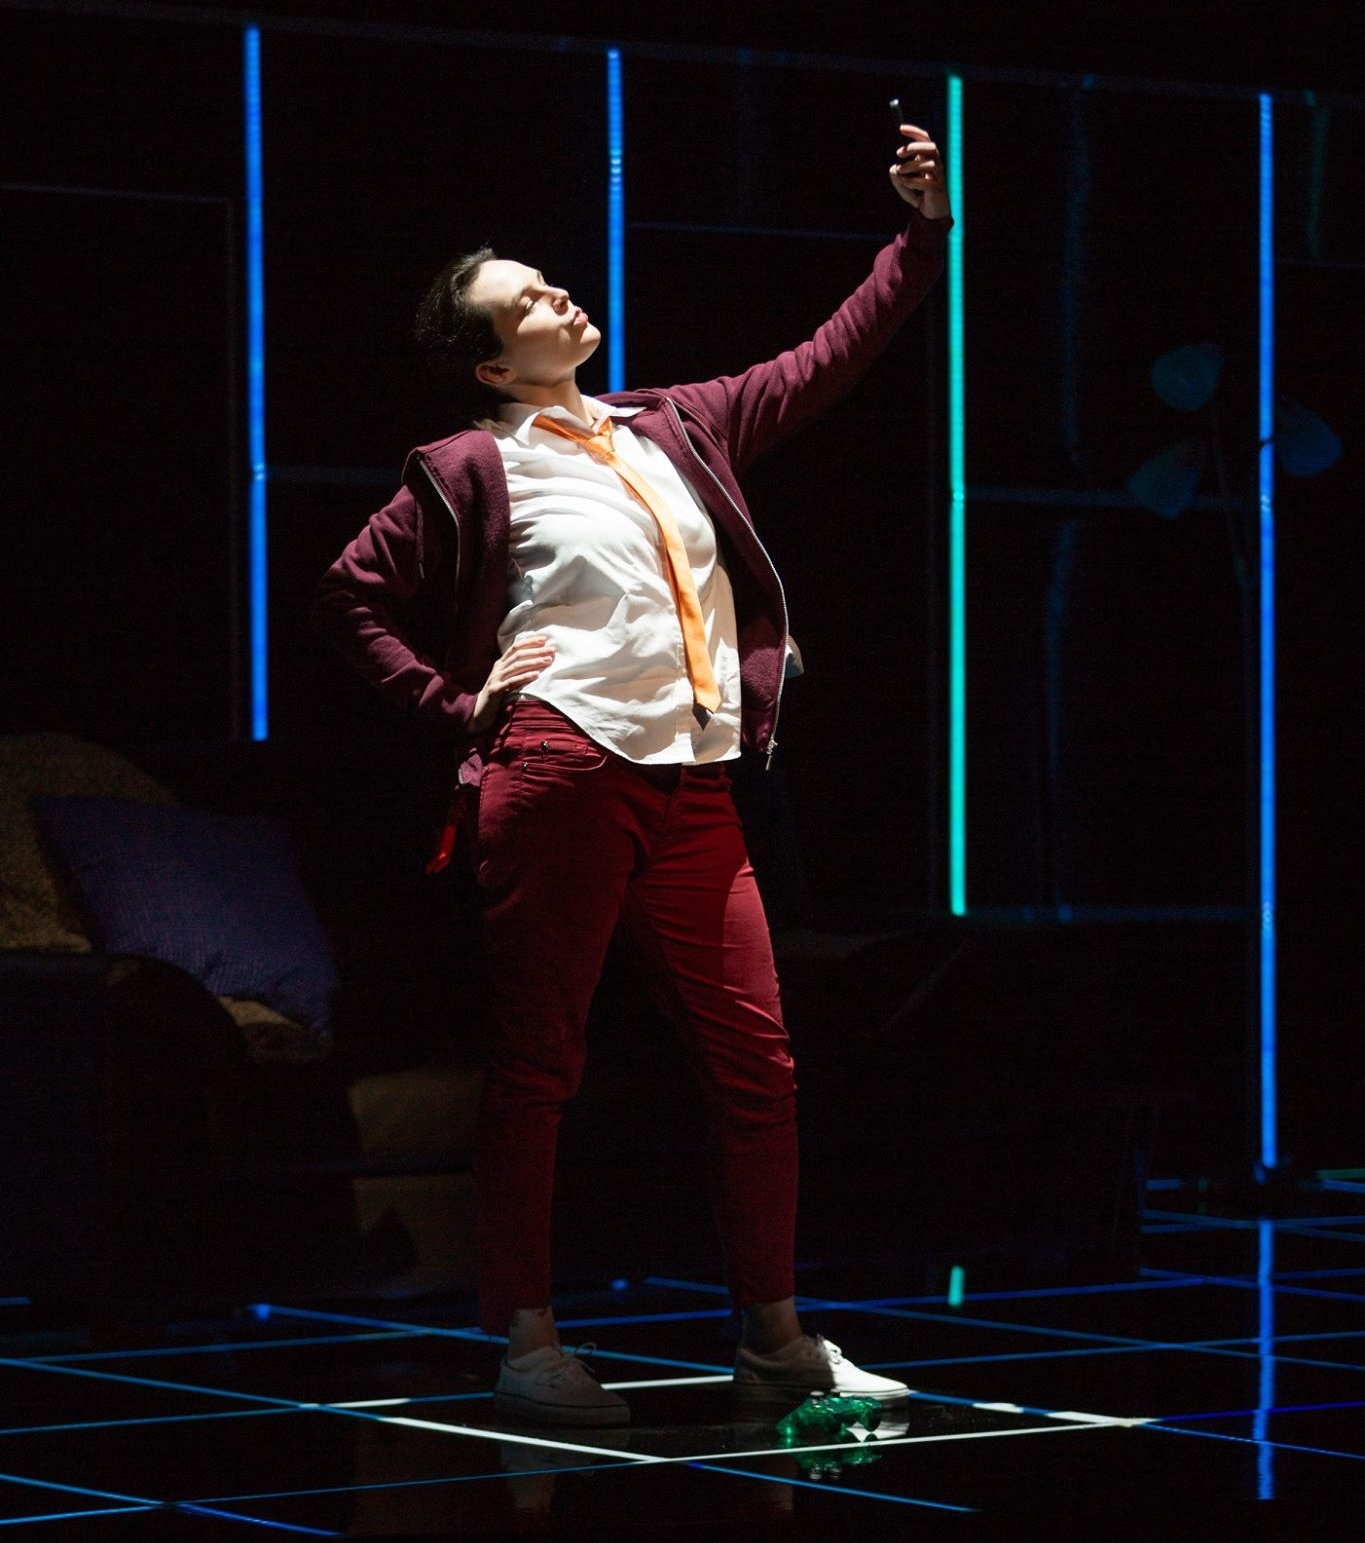 """PermaDeath - White Snake Projects 2018""""Sarah Coit, as Adonis, projected a bold stage and vocal presence.""""- Aaron Keebaugh, Boston Classical Review""""Sarah Coit's light but strong soprano imbued Adonis with a naïve bluster.""""-Opera News"""